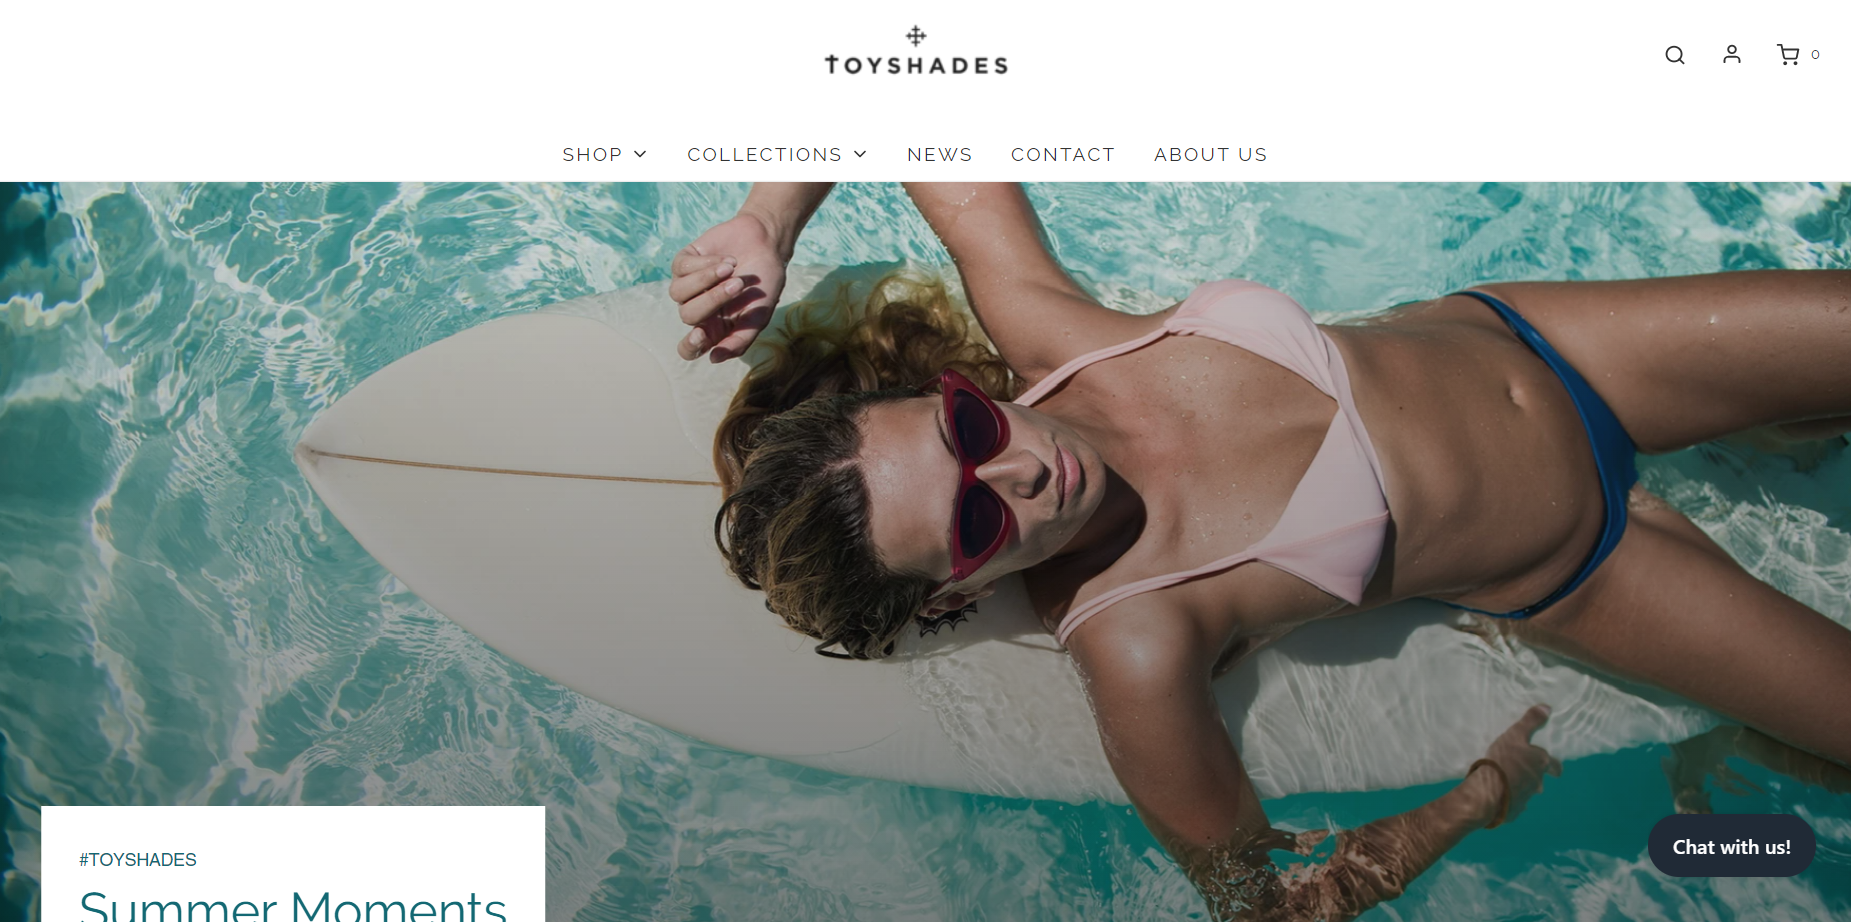 shopify dropshipping store examples - toyshades